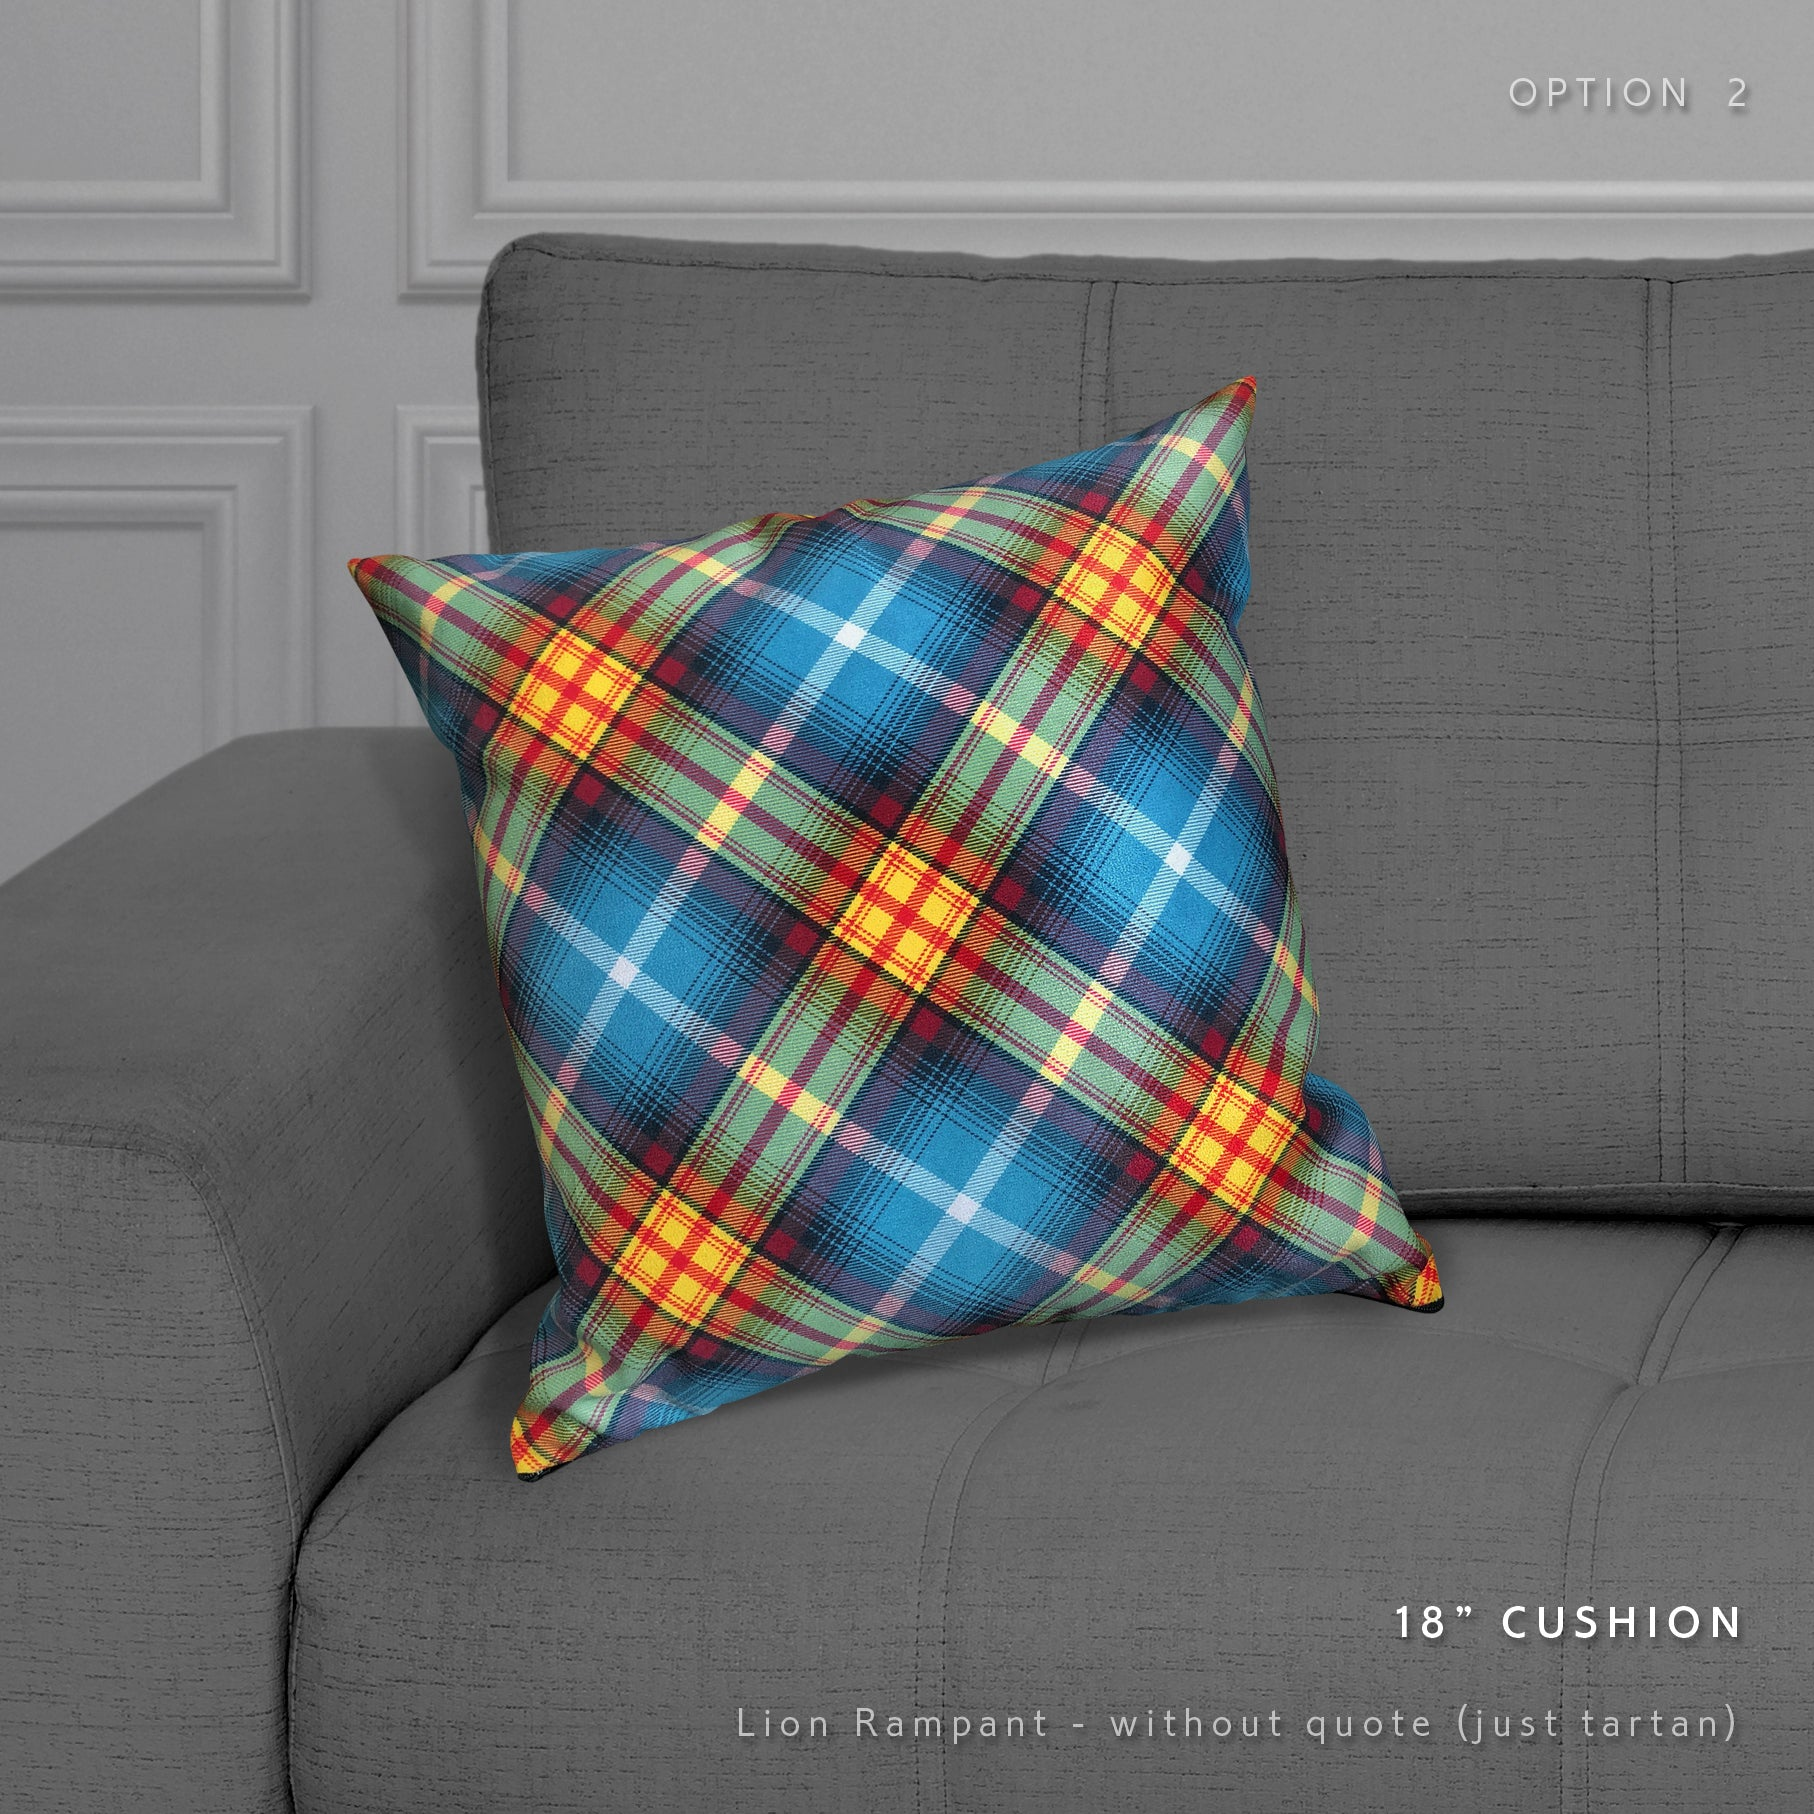 The Declaration of Arbroath Ancient Saltire tartan cushion